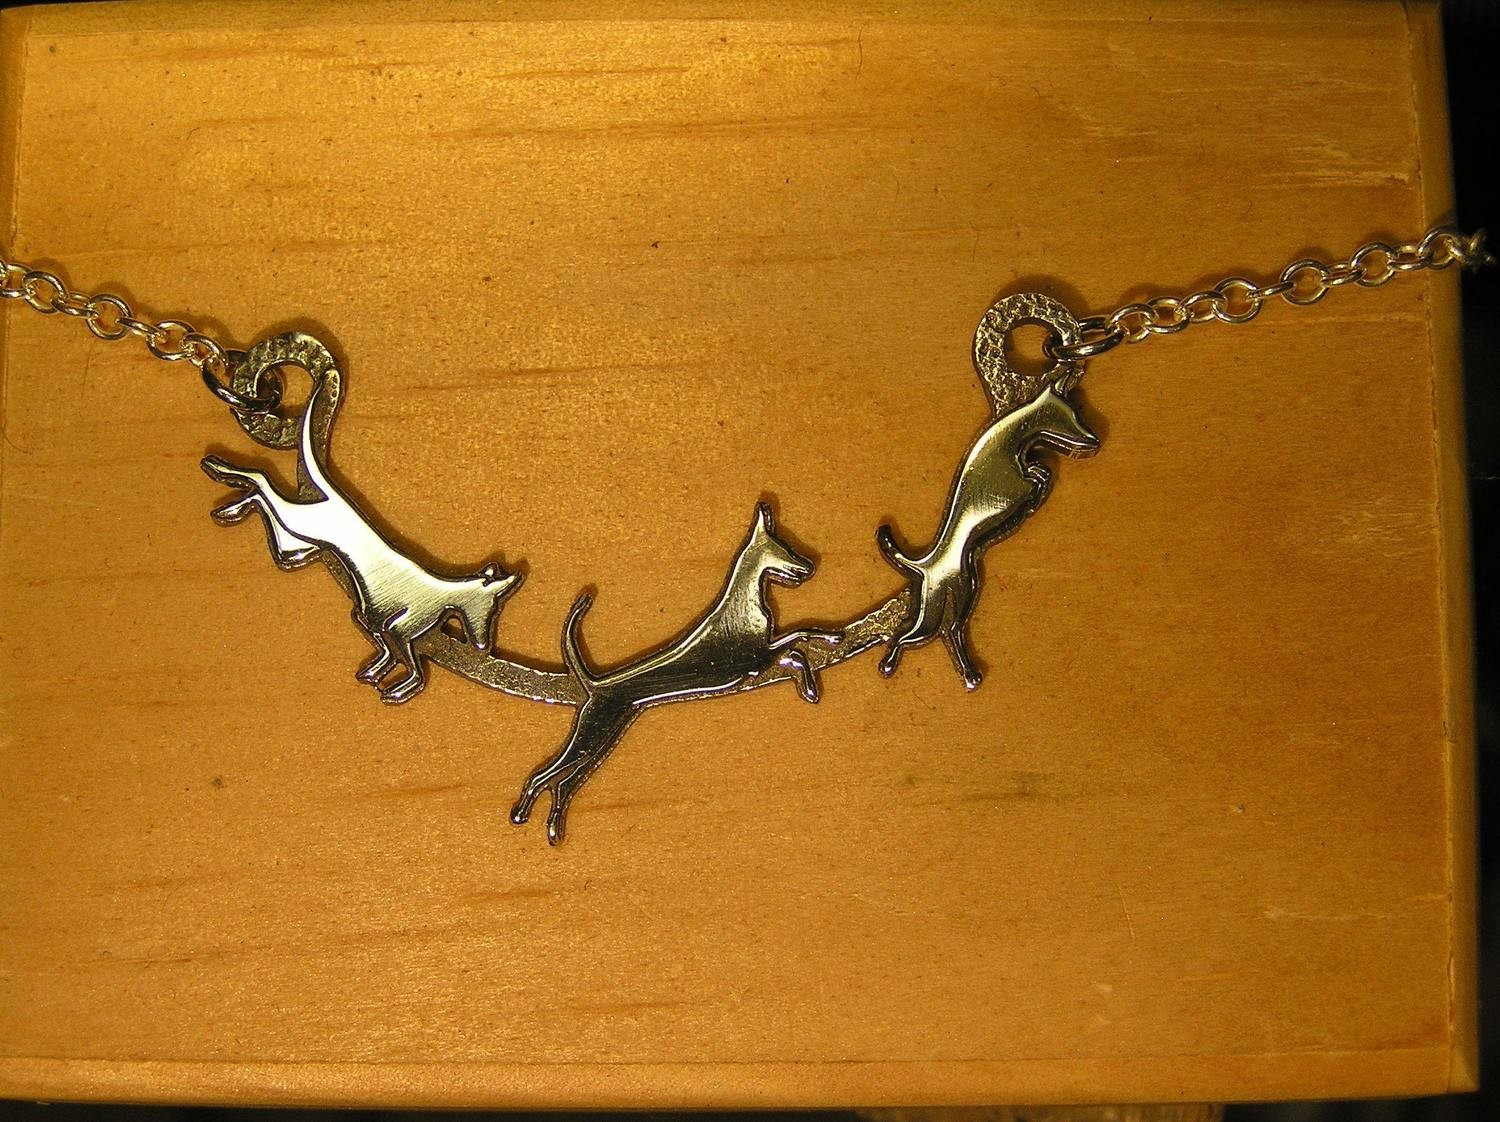 Leaping dogs on a silver chain